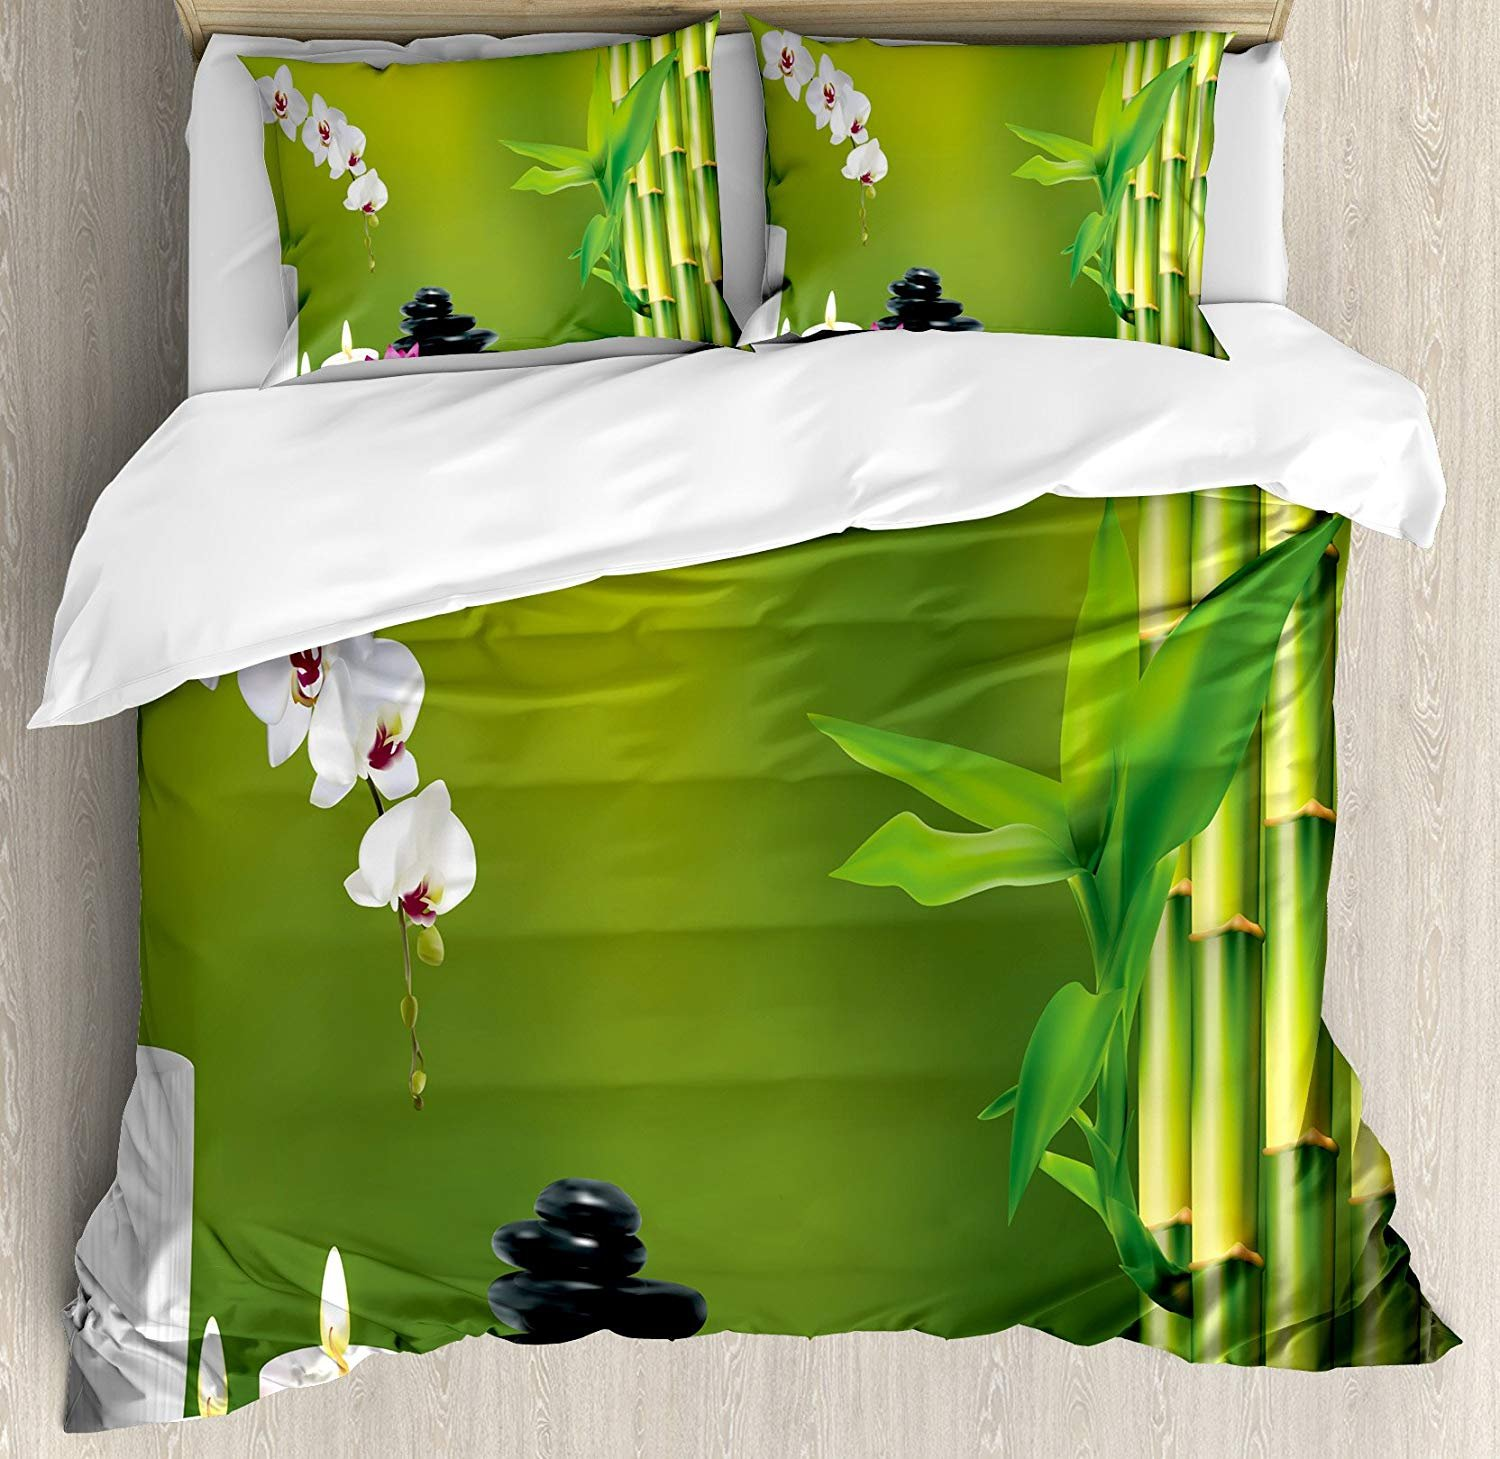 Anzona Spa Decor 4 Piece Bedding Set Twin Size, Bamboo Flower Stone Wax on The Table Orchid Rock Healthy Lifestyle, Duvet Cover Set Quilt Bedspread for Childrens/Kids/Teens/Adults